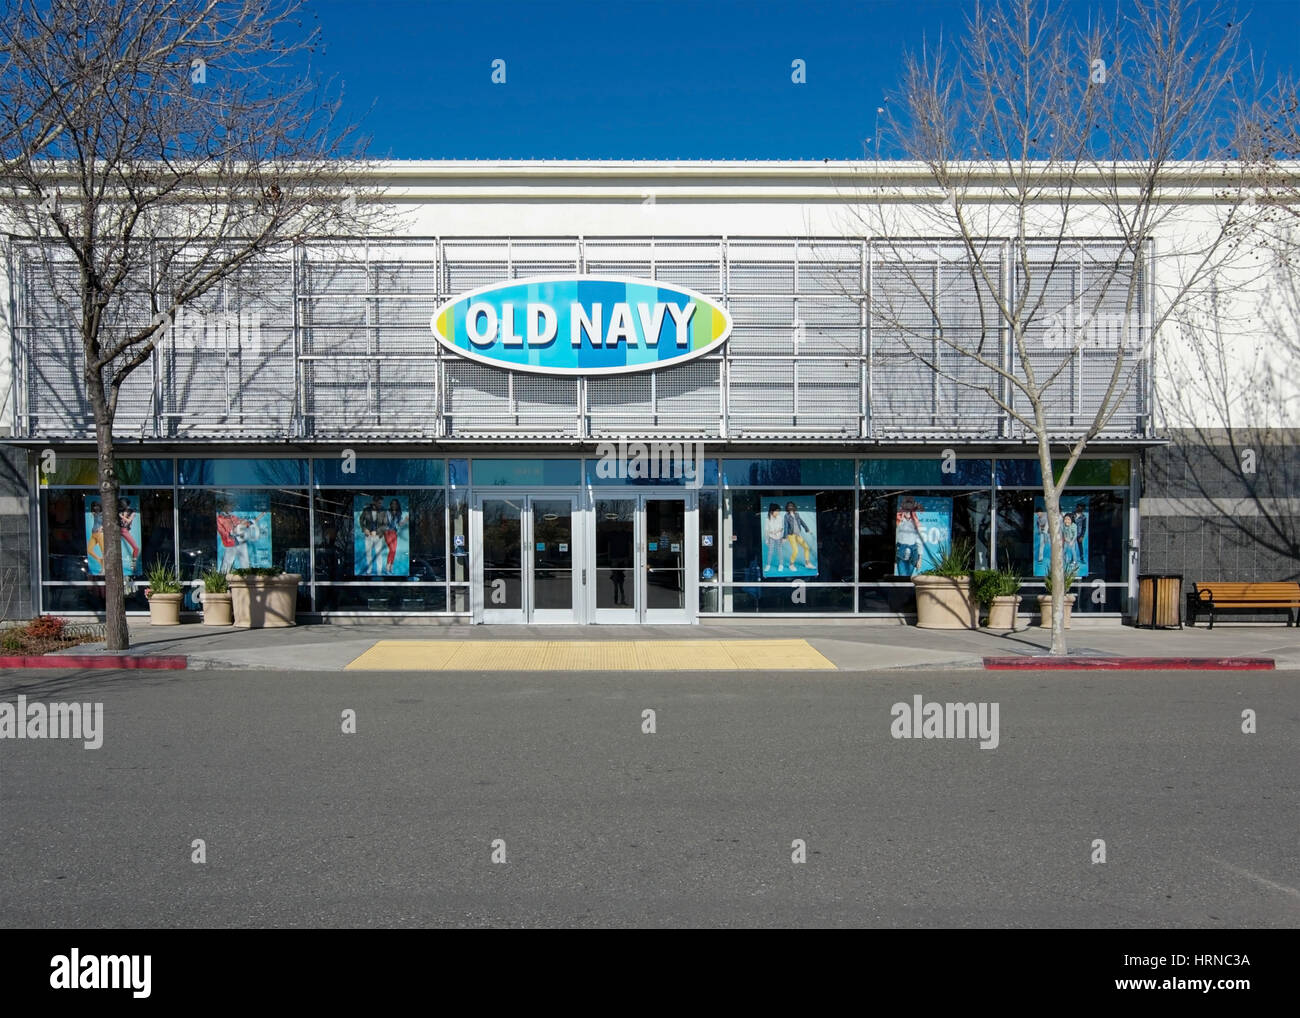 Front of an Old Navy  store at Nut Tree Plaza, Vacaville, California, USA, on a sunday morning - Stock Image